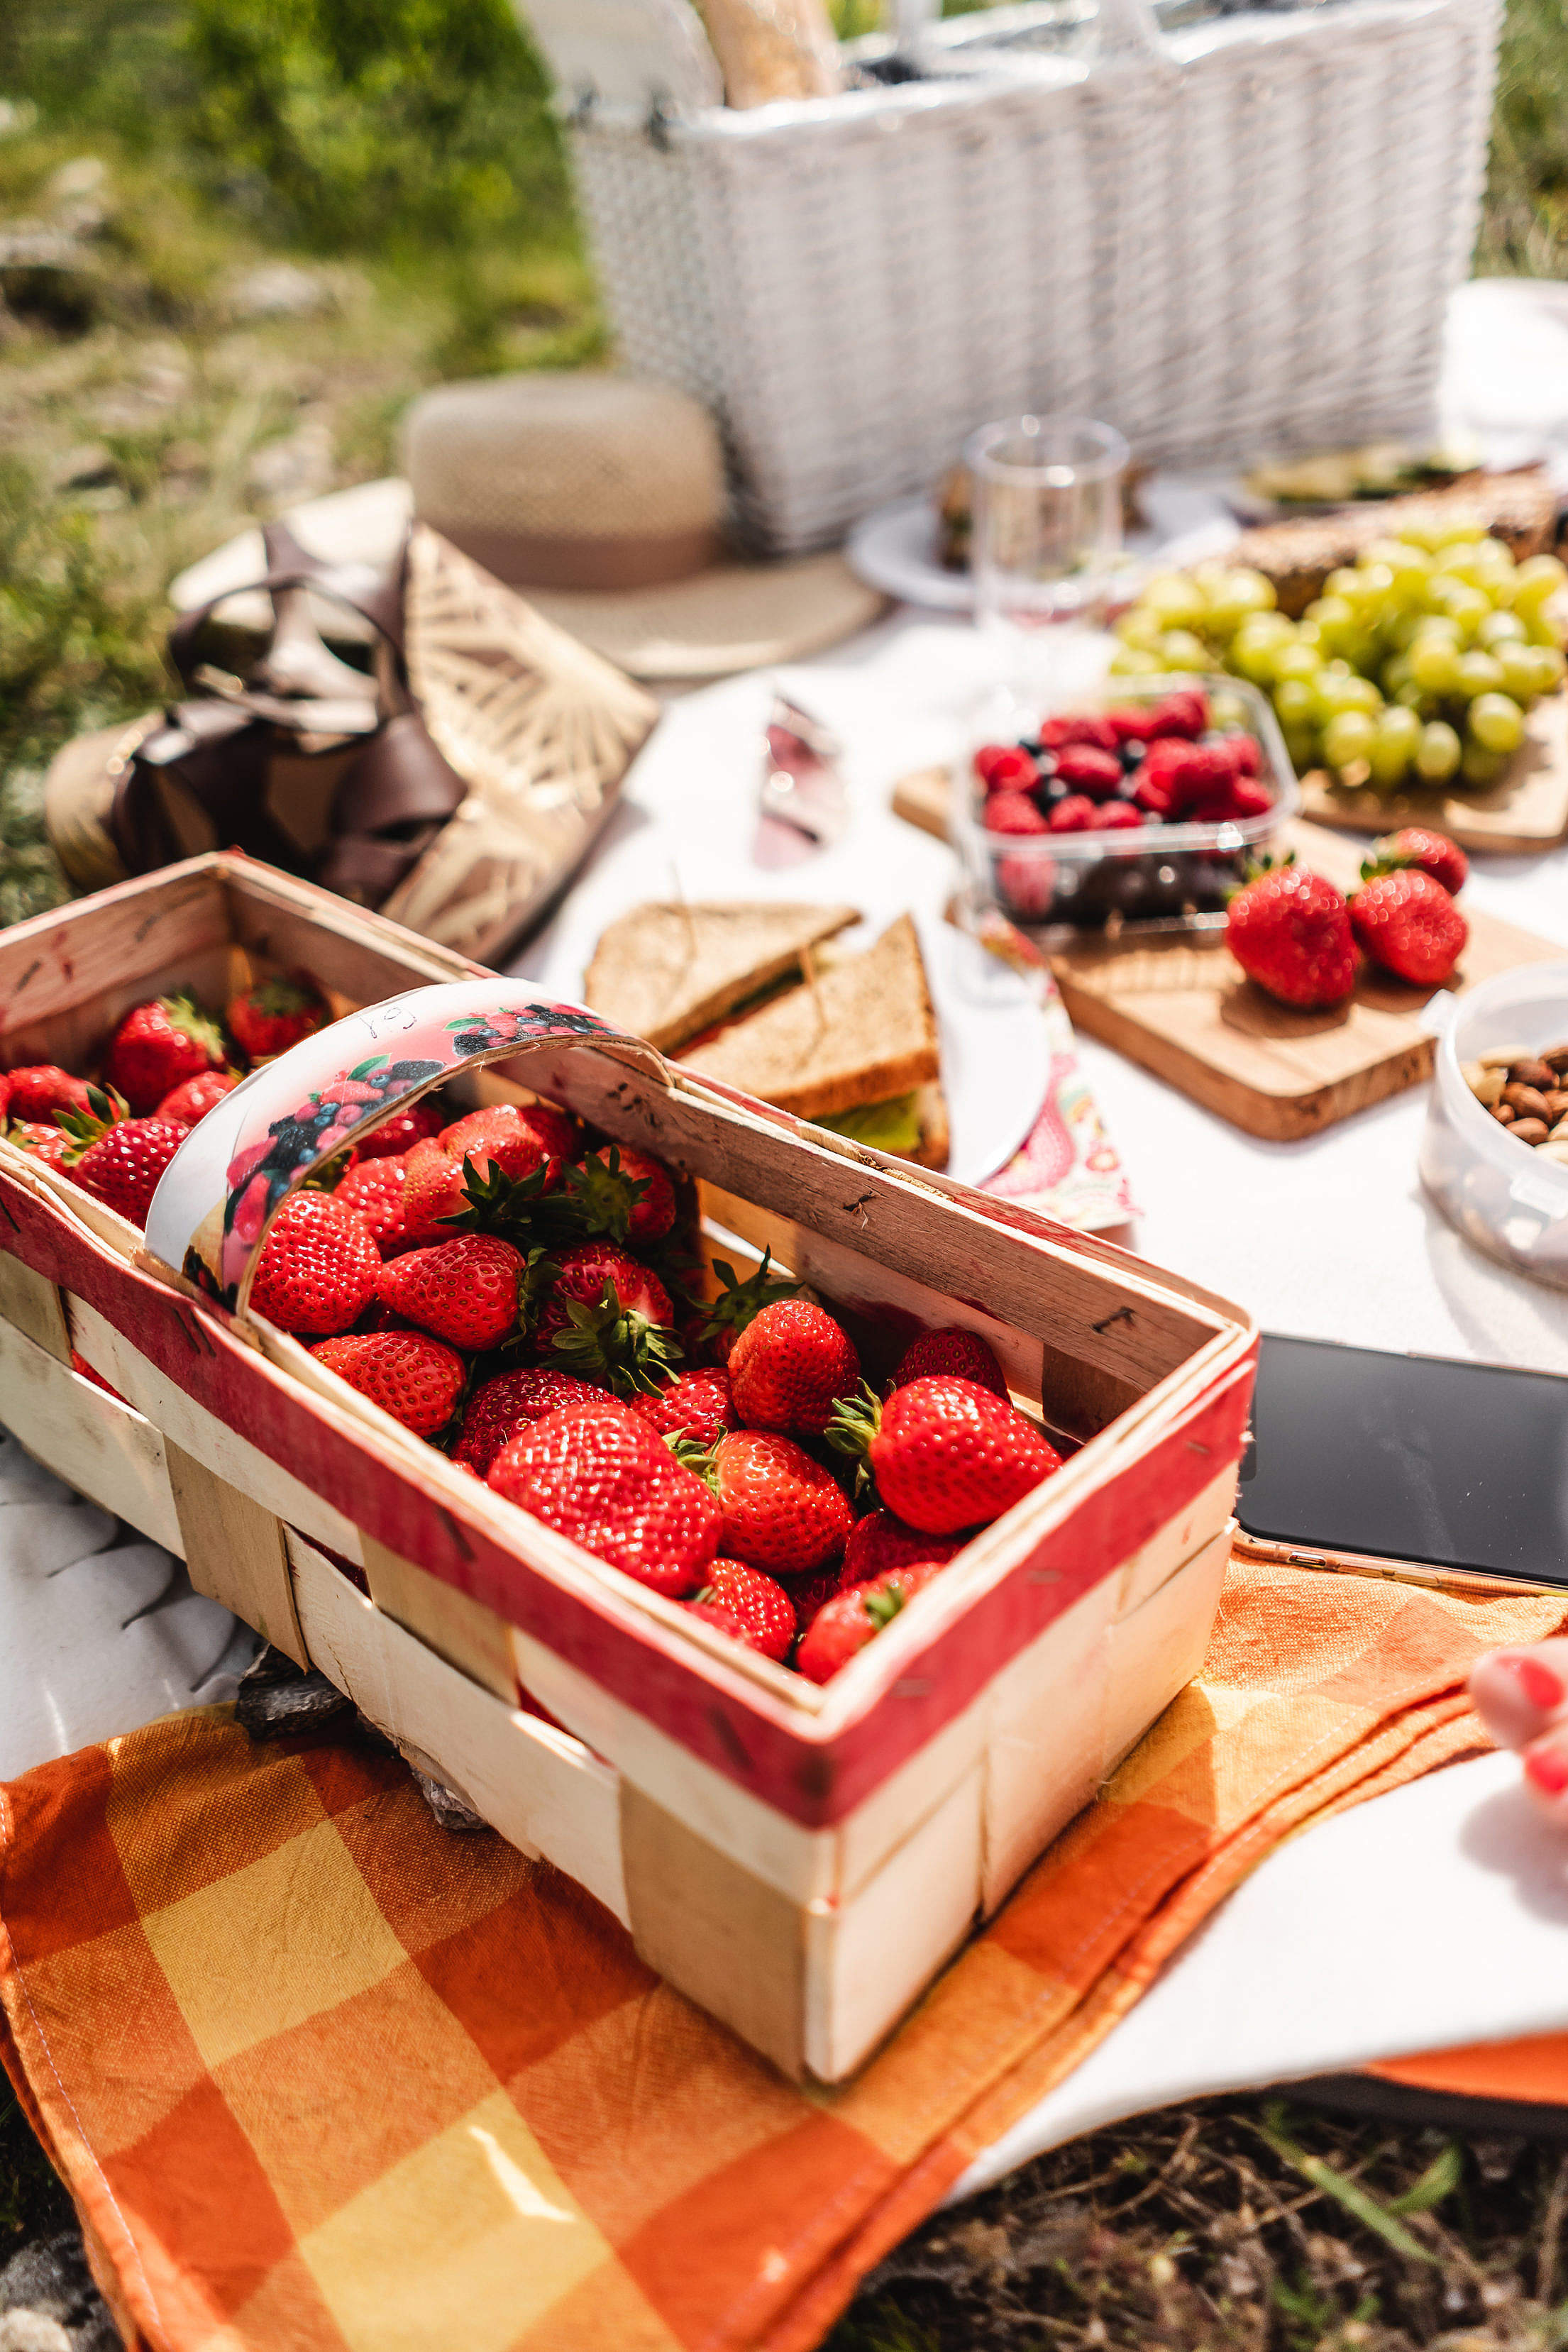 Picnic with Strawberries Free Stock Photo